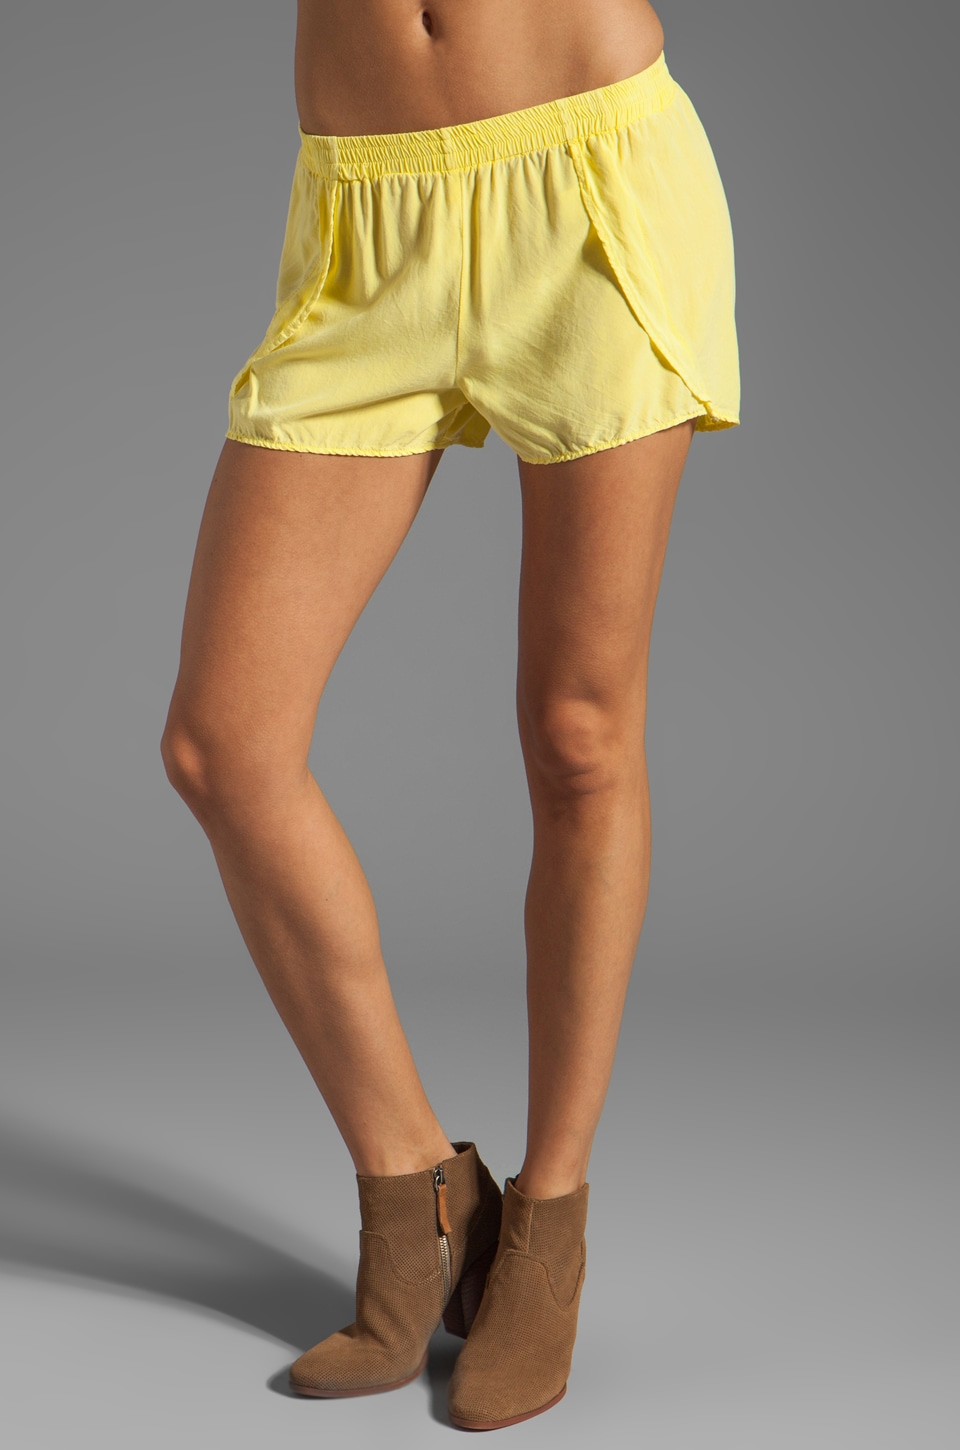 SAM&LAVI Lance Shorts in Light Yellow